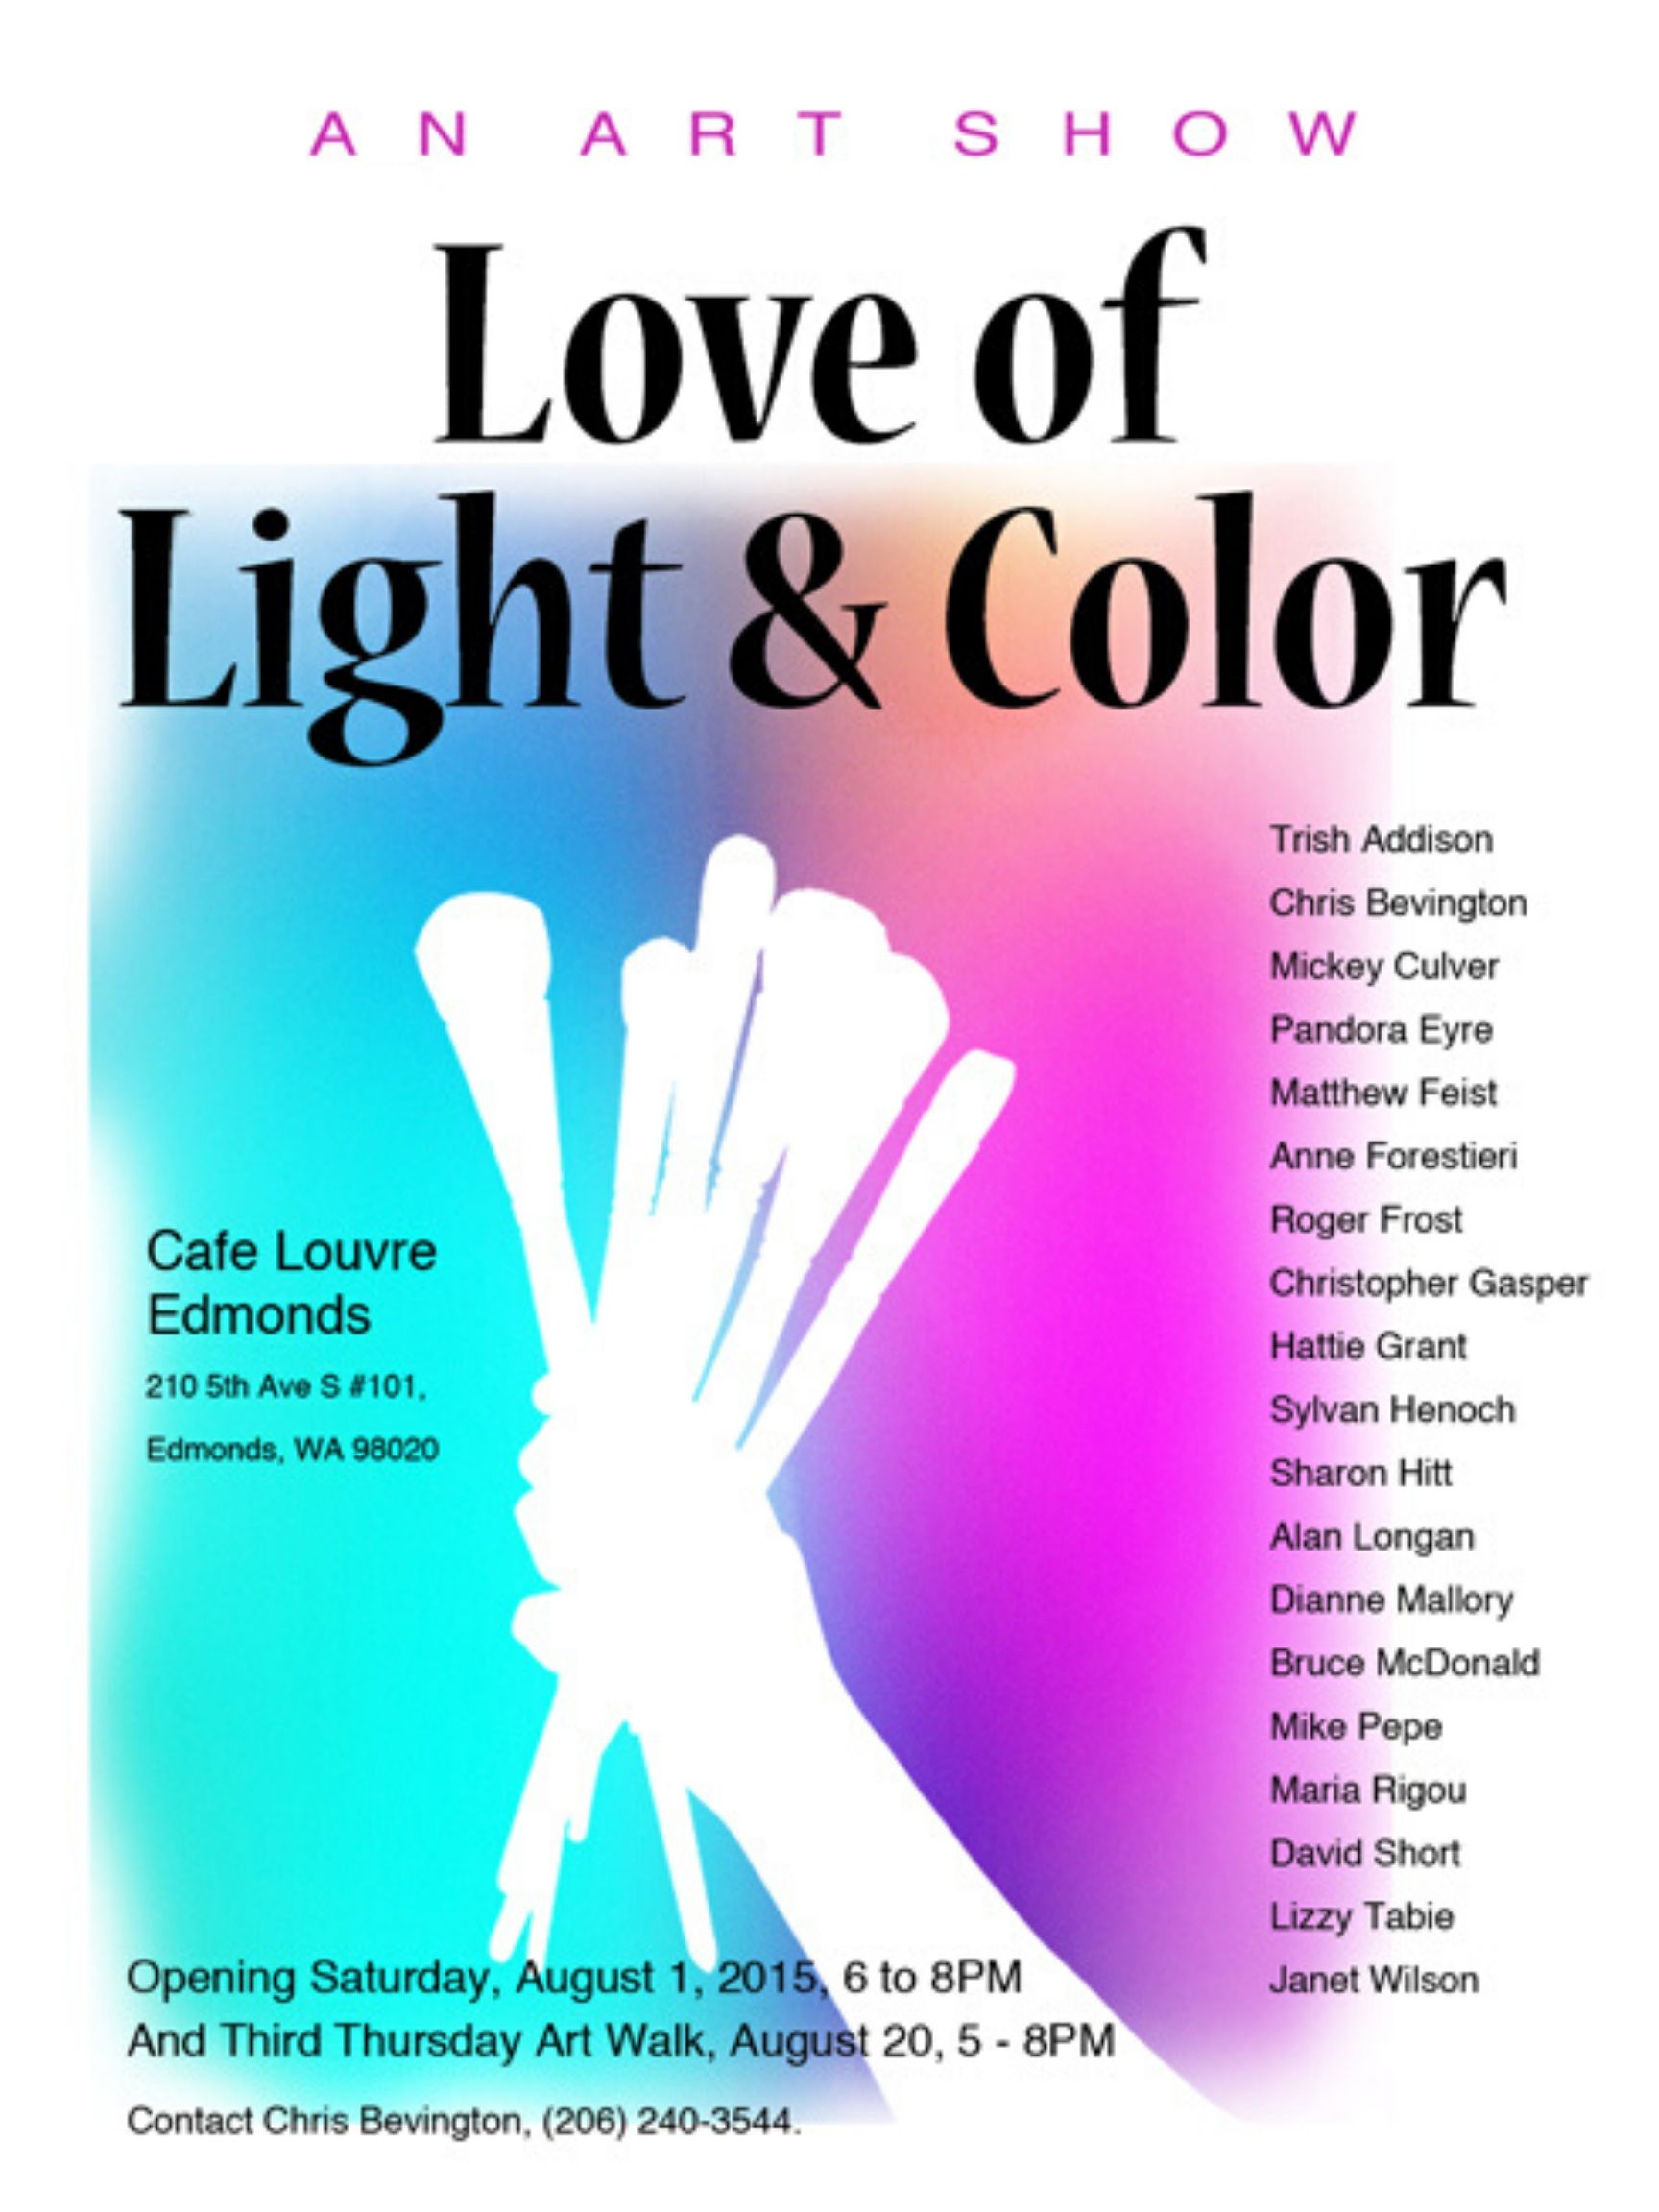 Love of Light & Color Show 2015